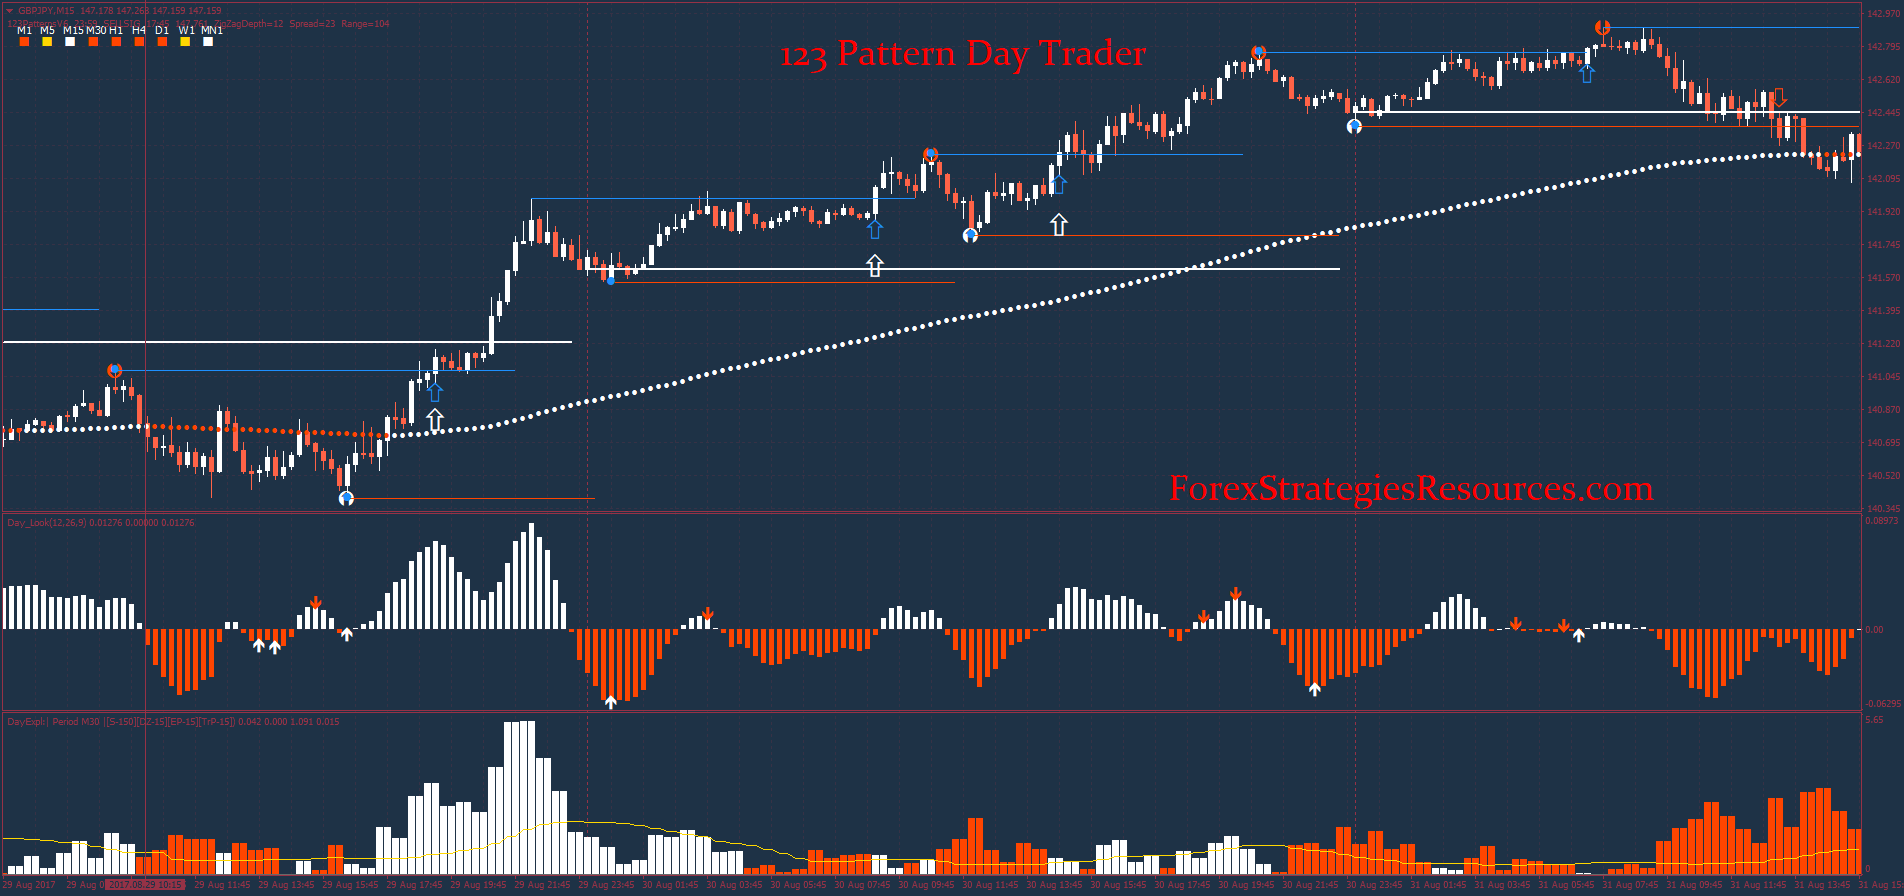 Pattern Day Trading Rules Custom Ideas